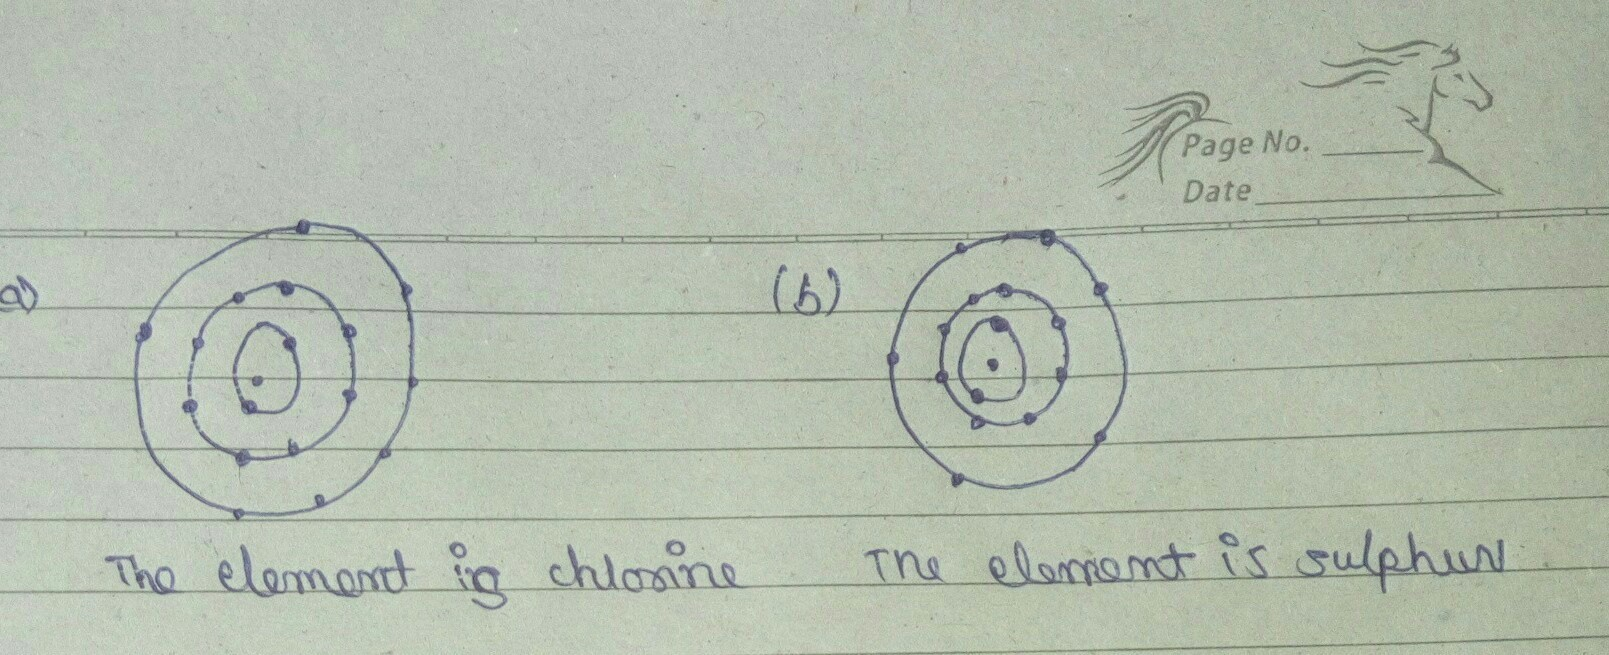 Draw The Electronic Structure Of Element X With Atomic Number 17 And